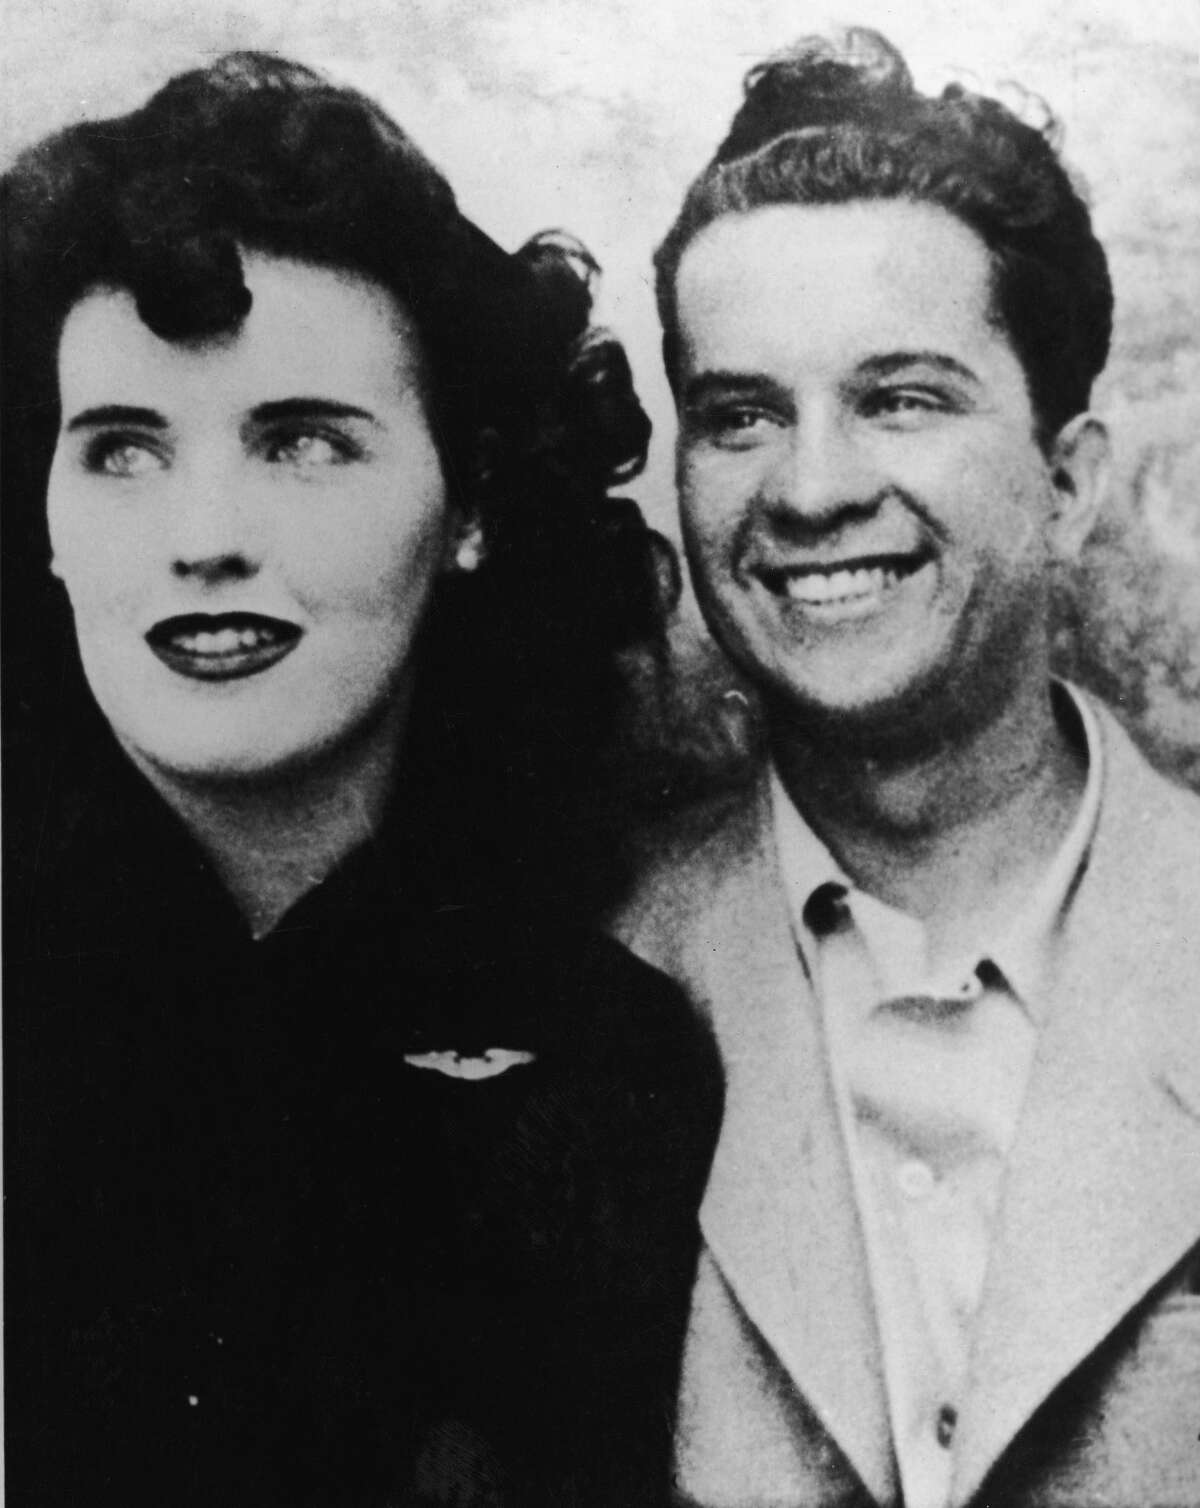 Photograph probably taken in a photo booth of murder victim Elizabeth Short (1924 - 1947), known as the 'Black Dahlia,' and an unidentified man, mid 1940s. Some experts believe this man to be a suspect in the still unsolved murder.